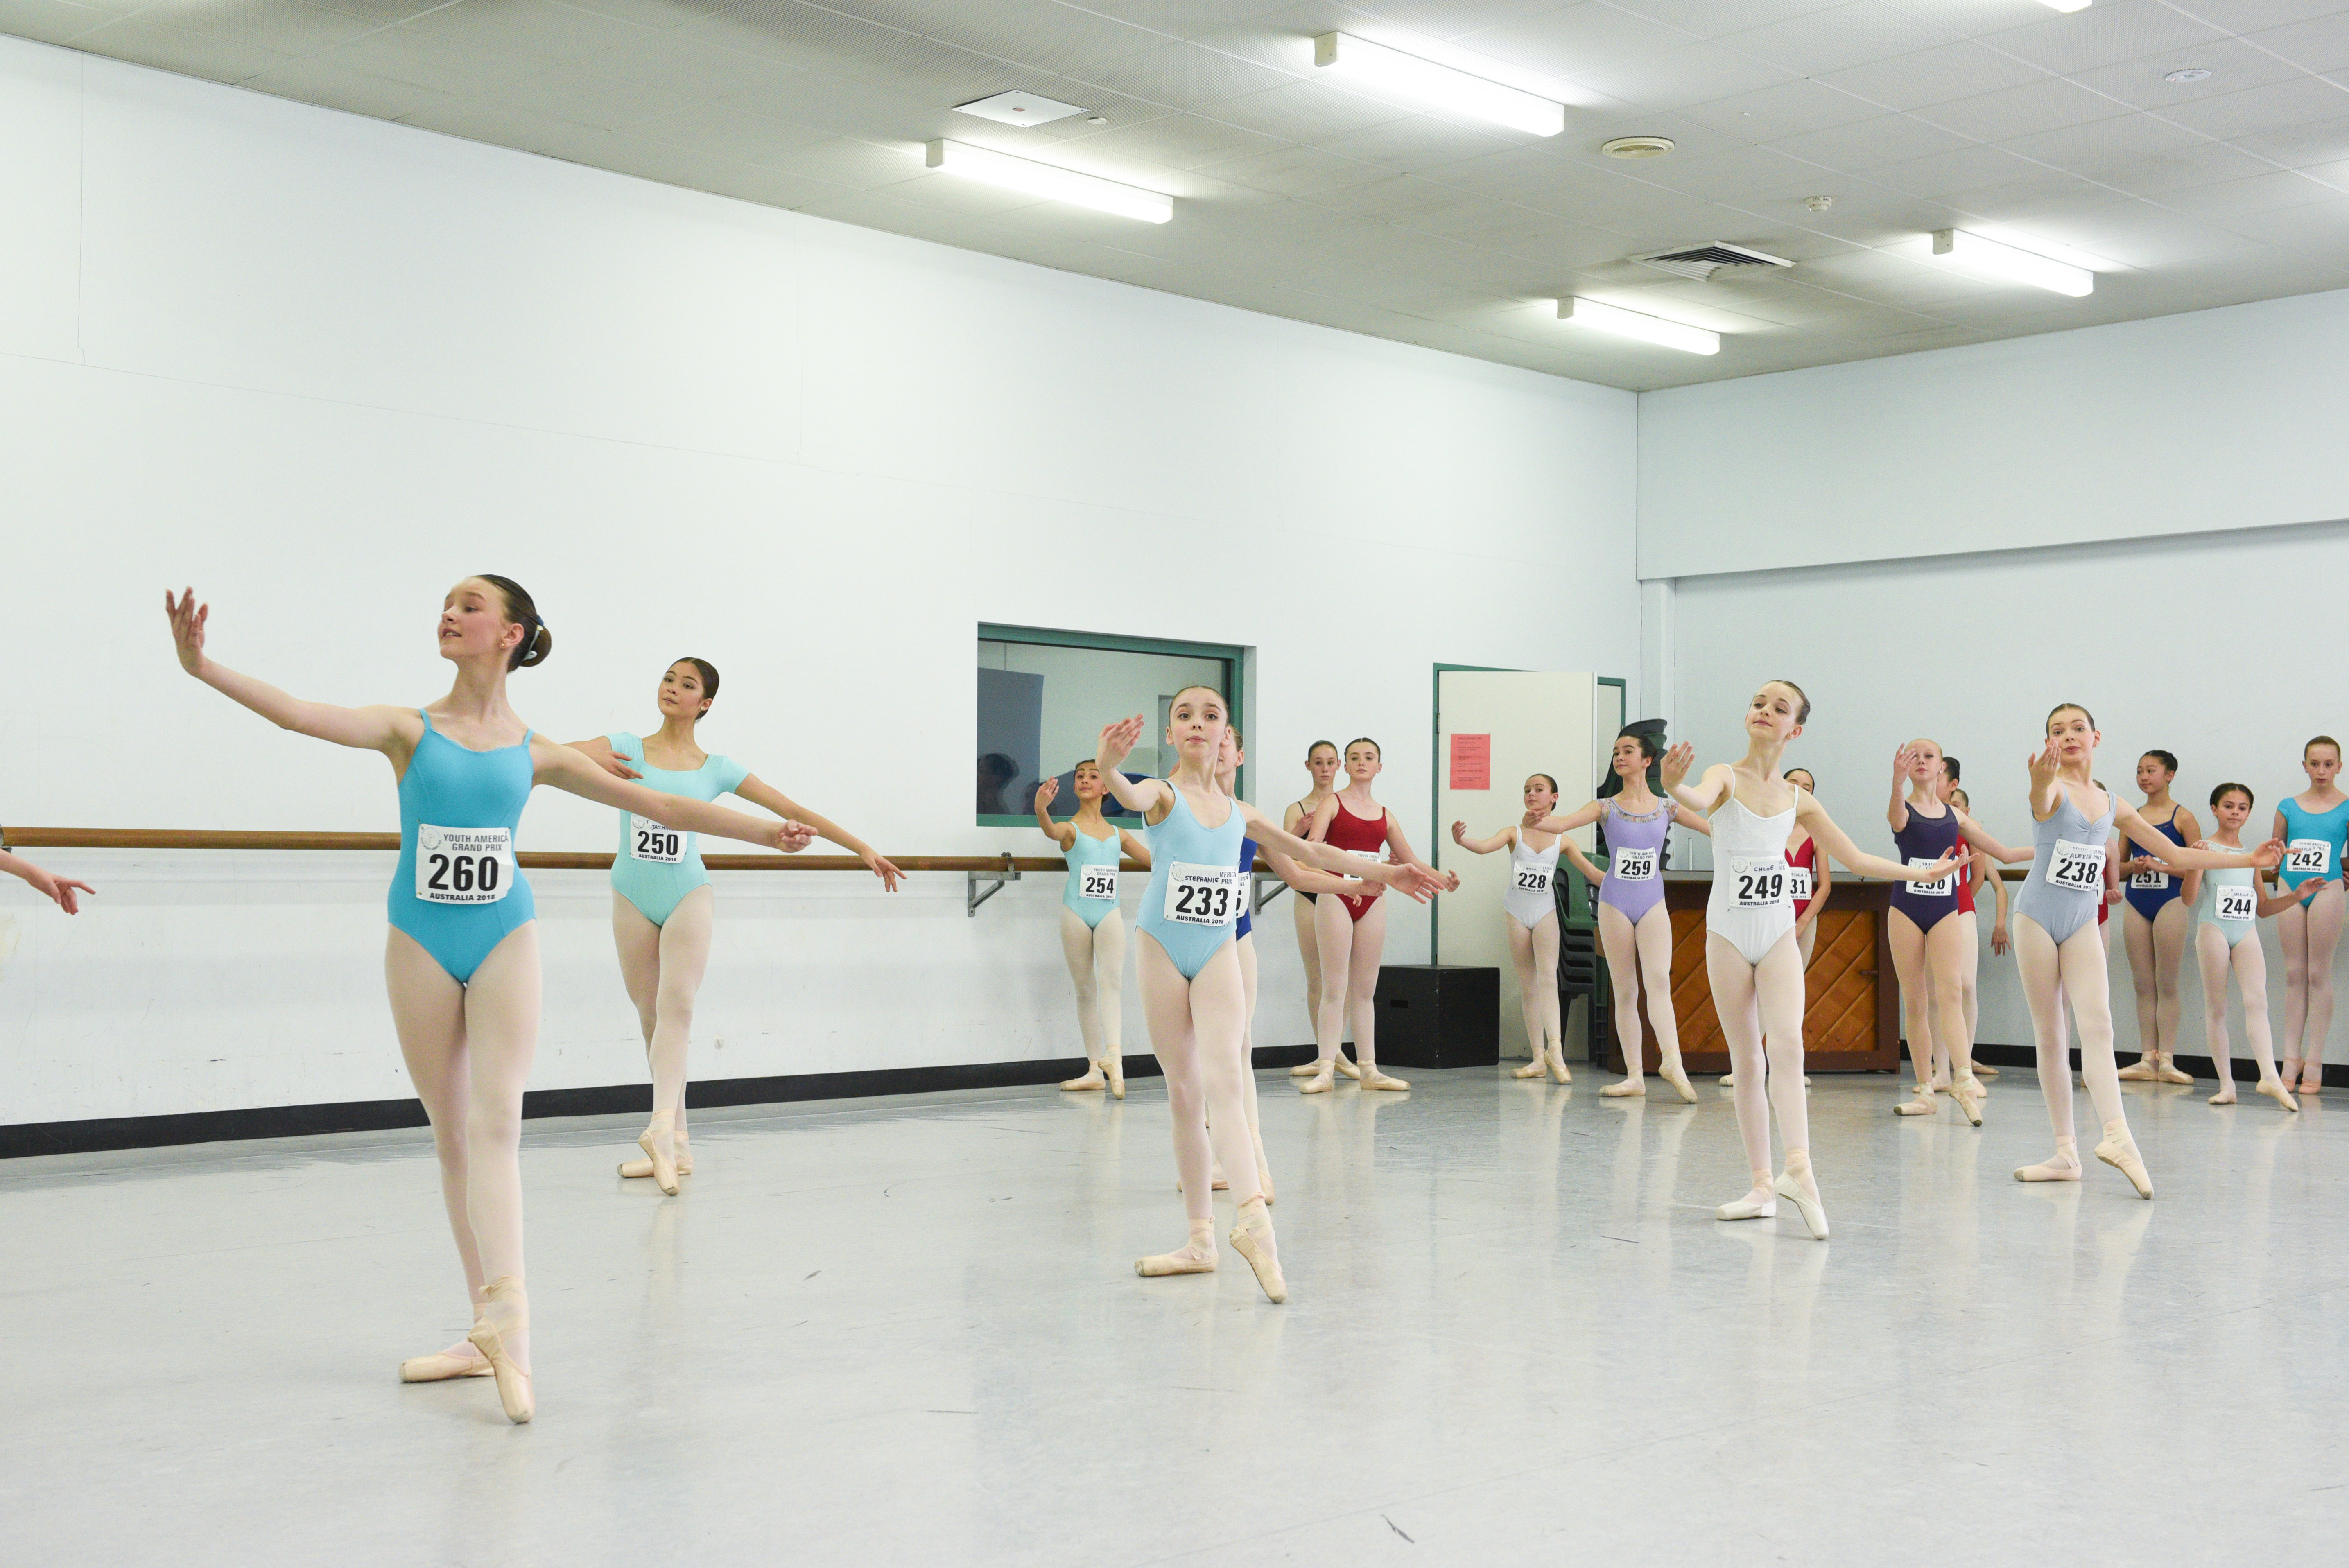 What Age Should Student Start Wearing Pointe Shoes? - Dance